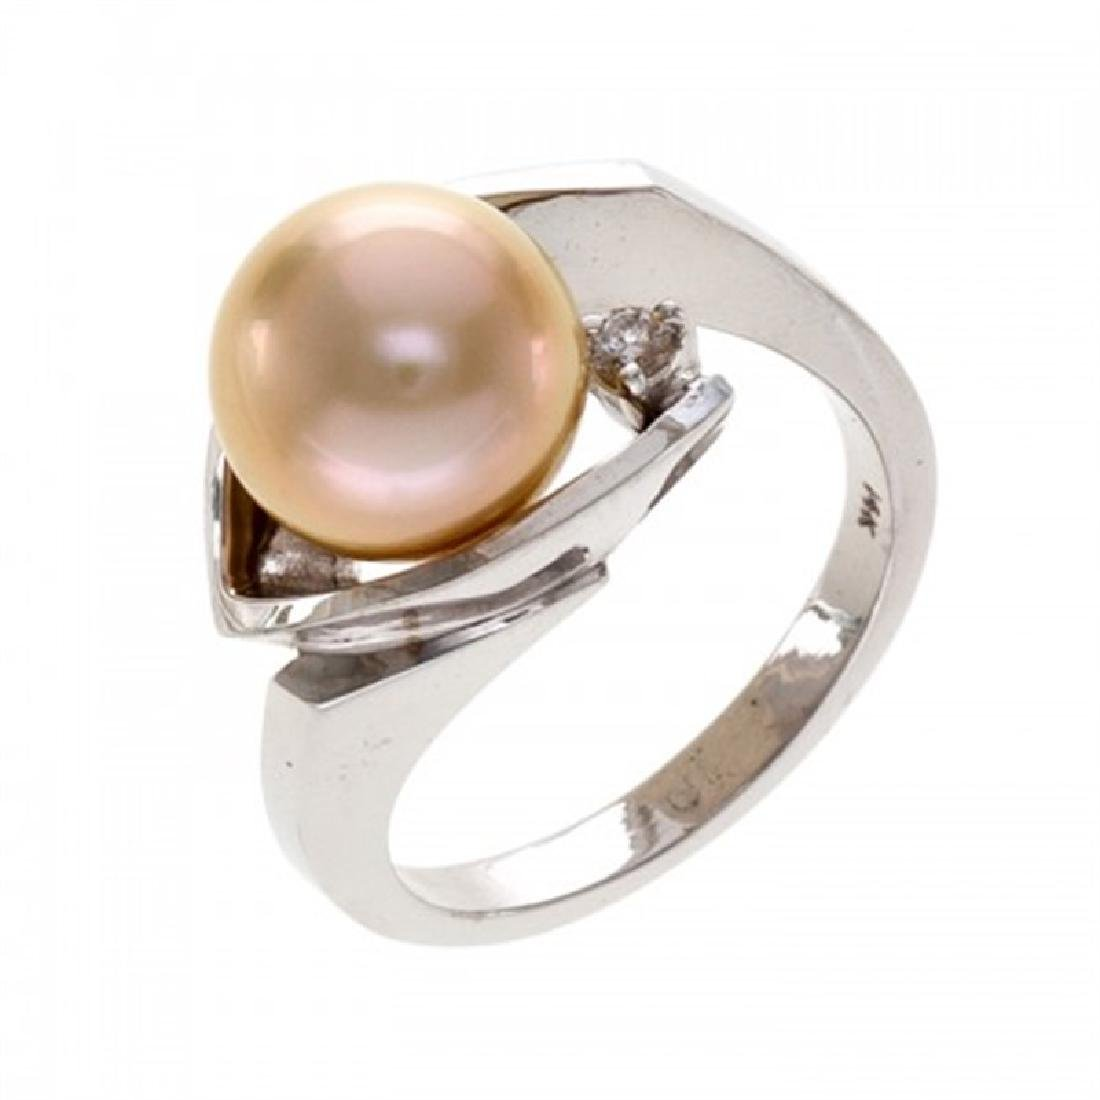 9.5-10.0mm Golden South Sea Pearl Ring with Diamond